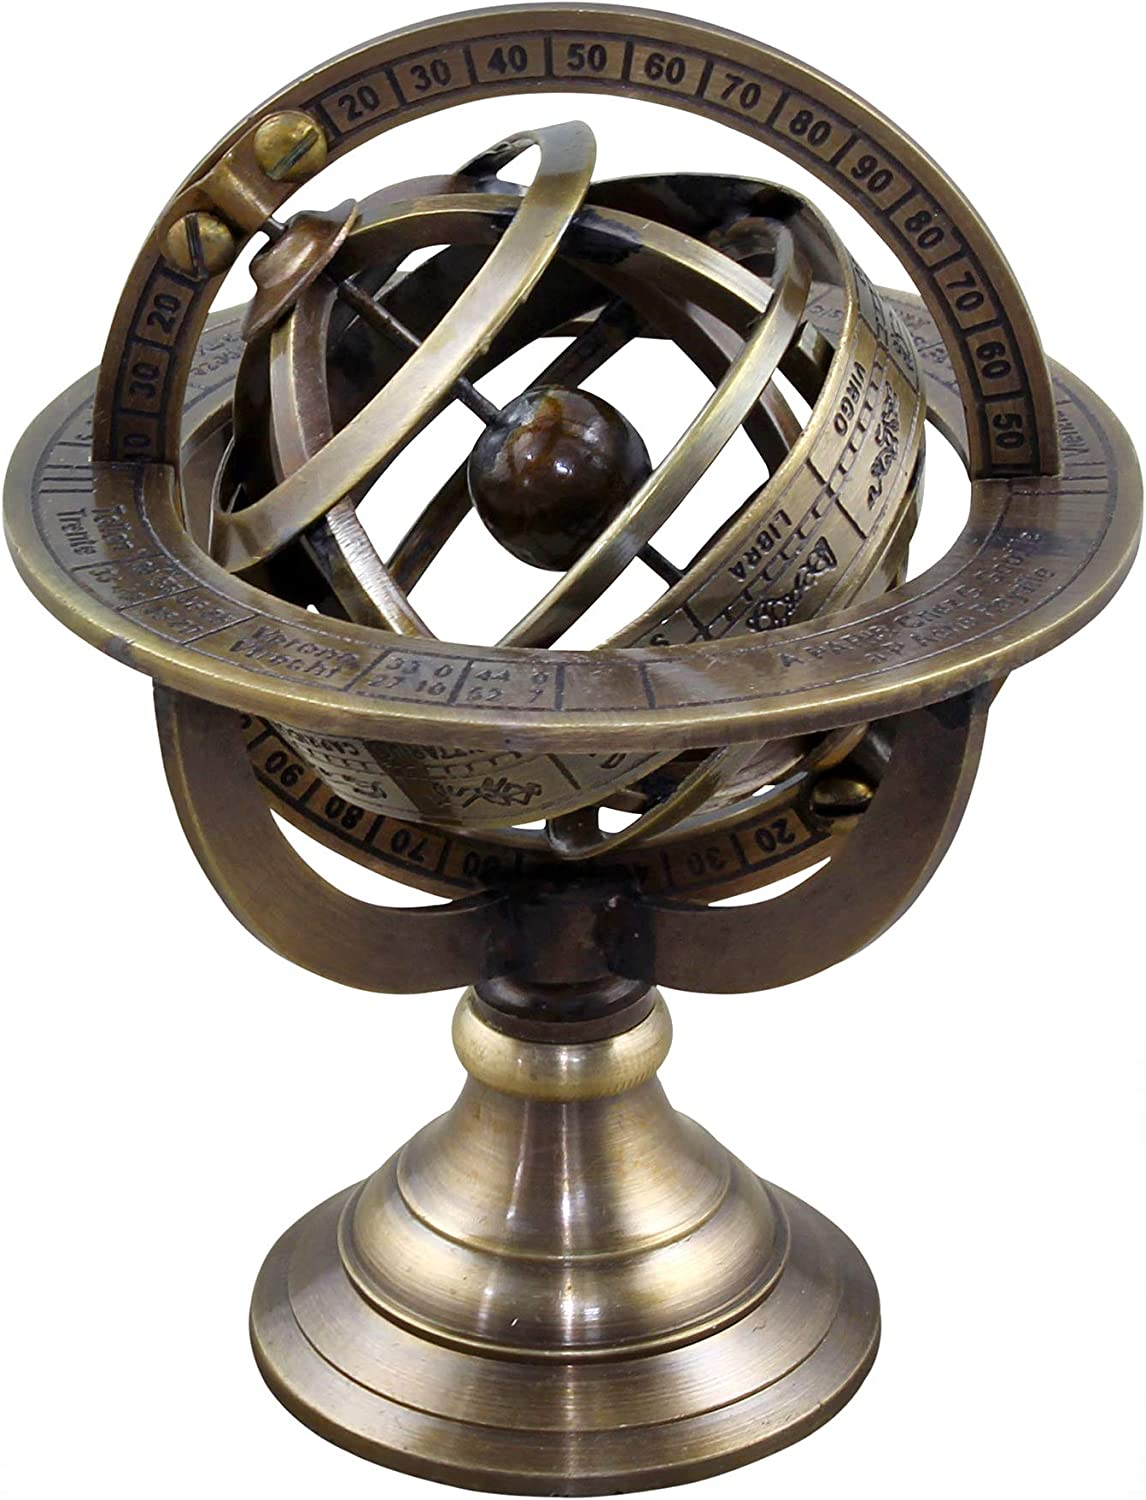 RoyaltyRoute Small Gold Armillary Stand, Metal Globe with Astrological Signs, Brass Armillary Sphere, Coastal Table Decor, Traditional Table Decor 4.5